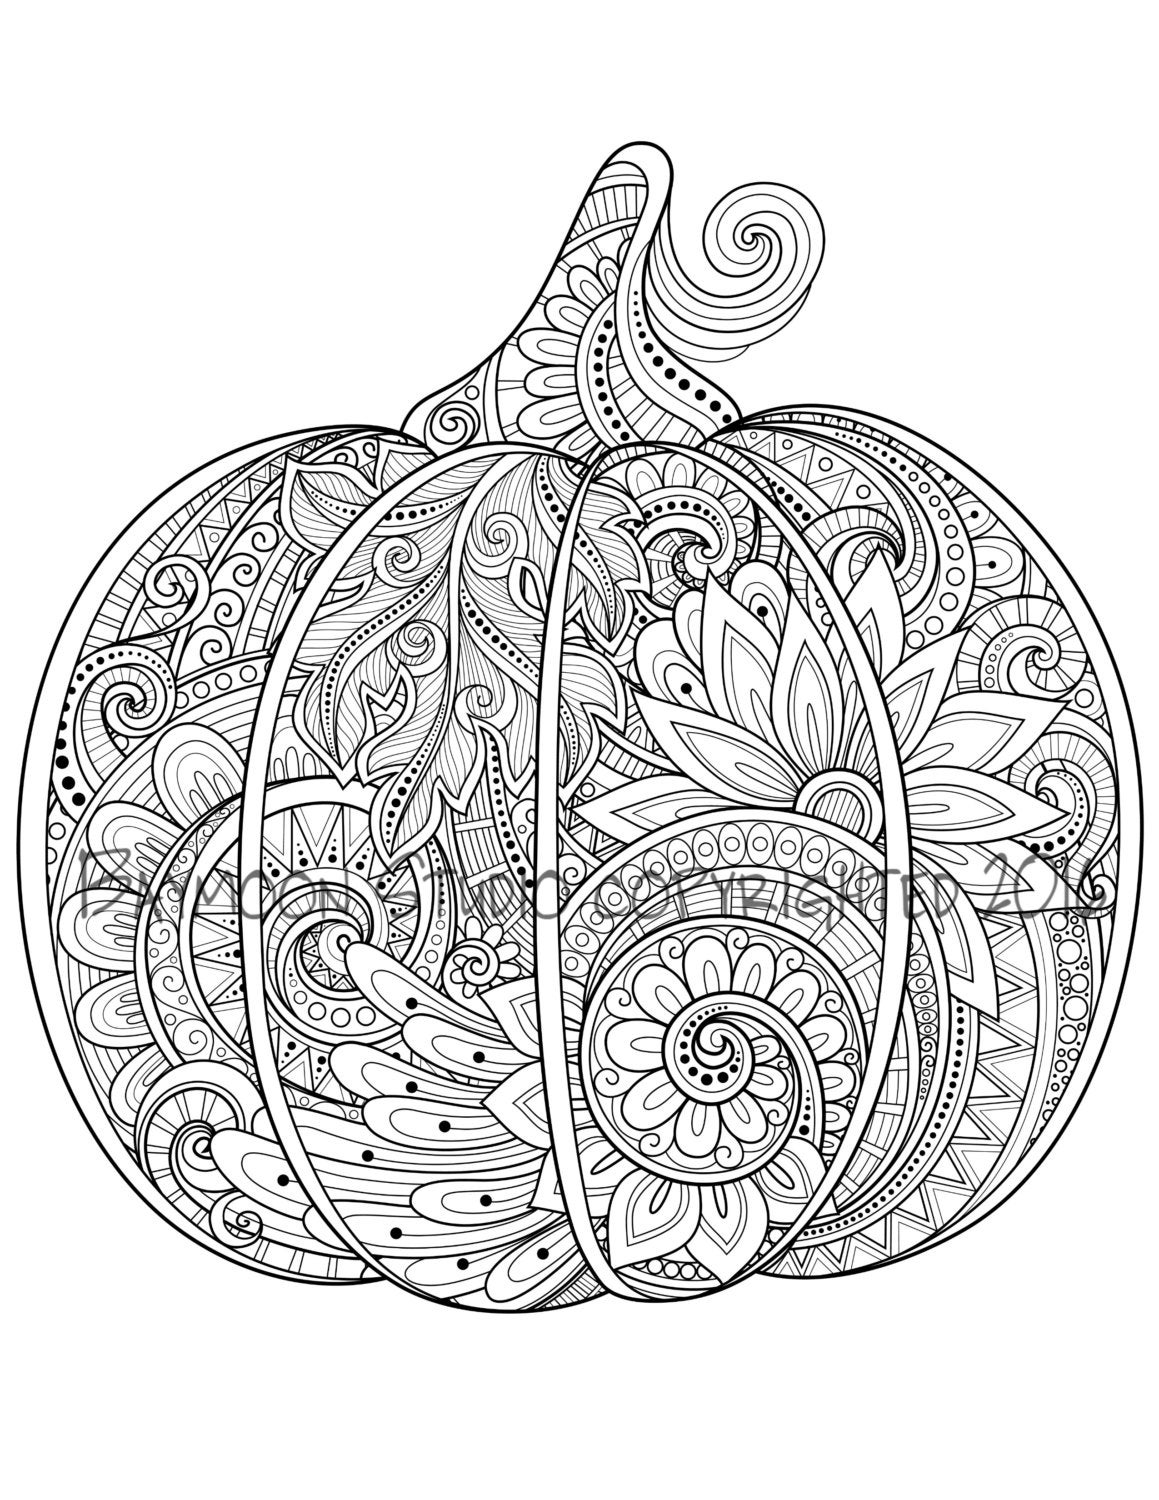 paisley print coloring pages paisley flower printable adult coloring page from print paisley pages coloring